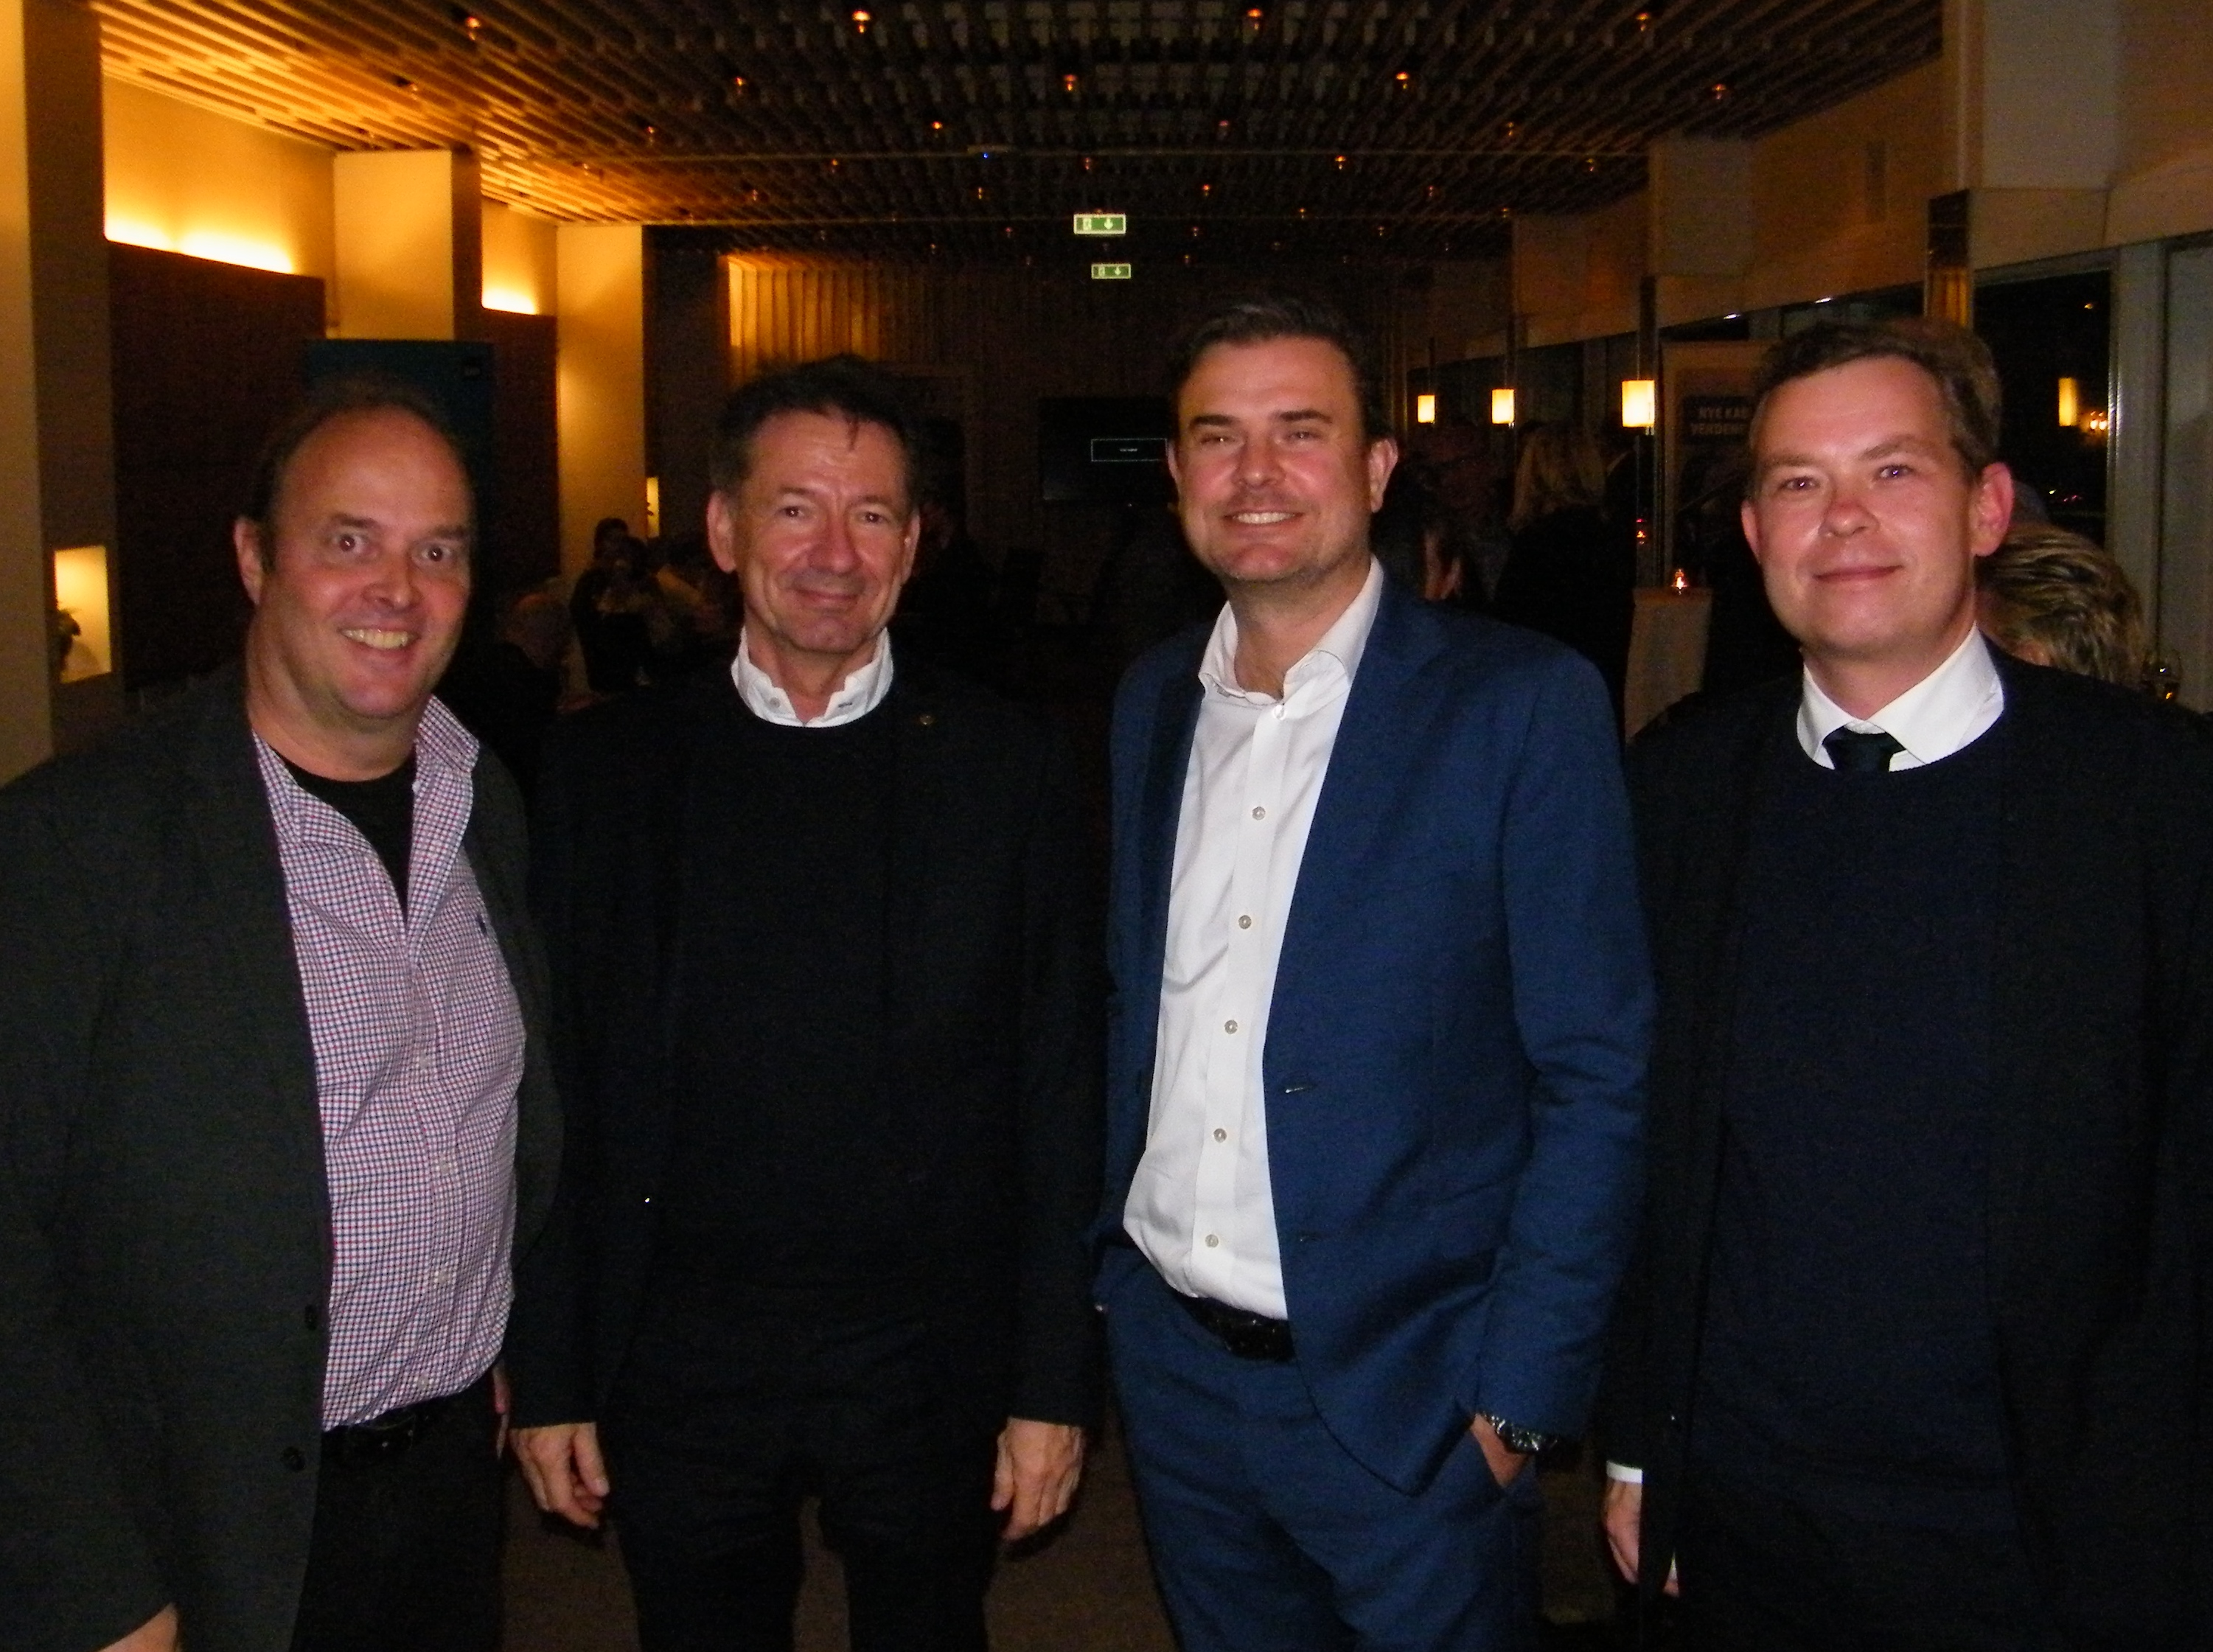 Fra SAS' Hong Kong-reception for rejsebranchen onsdag i København, fra venstre Peter Skieller, chef for forretningsudvikling i Mangaard Travel Group, Torben Nygaard, country manager for FCM Travel Solutions, SAS' salgschef i Danmark, Michael Hansen, og Thomas Friis Rasmussen, chef for client management hos BCD Travel i Danmark. Foto: Henrik Baumgarten.